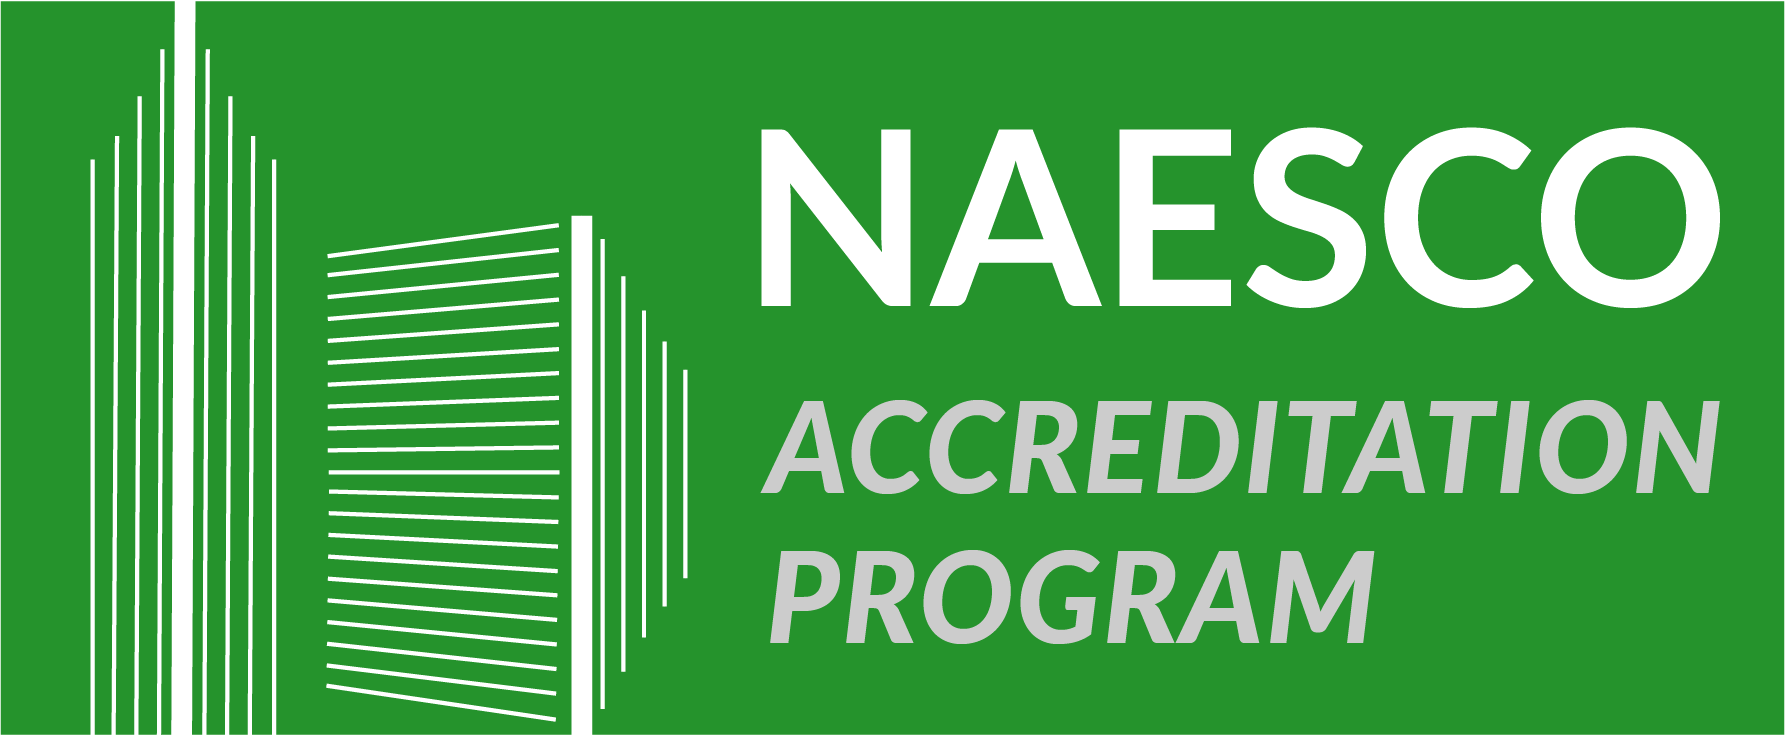 NAESCO Accreditation Program